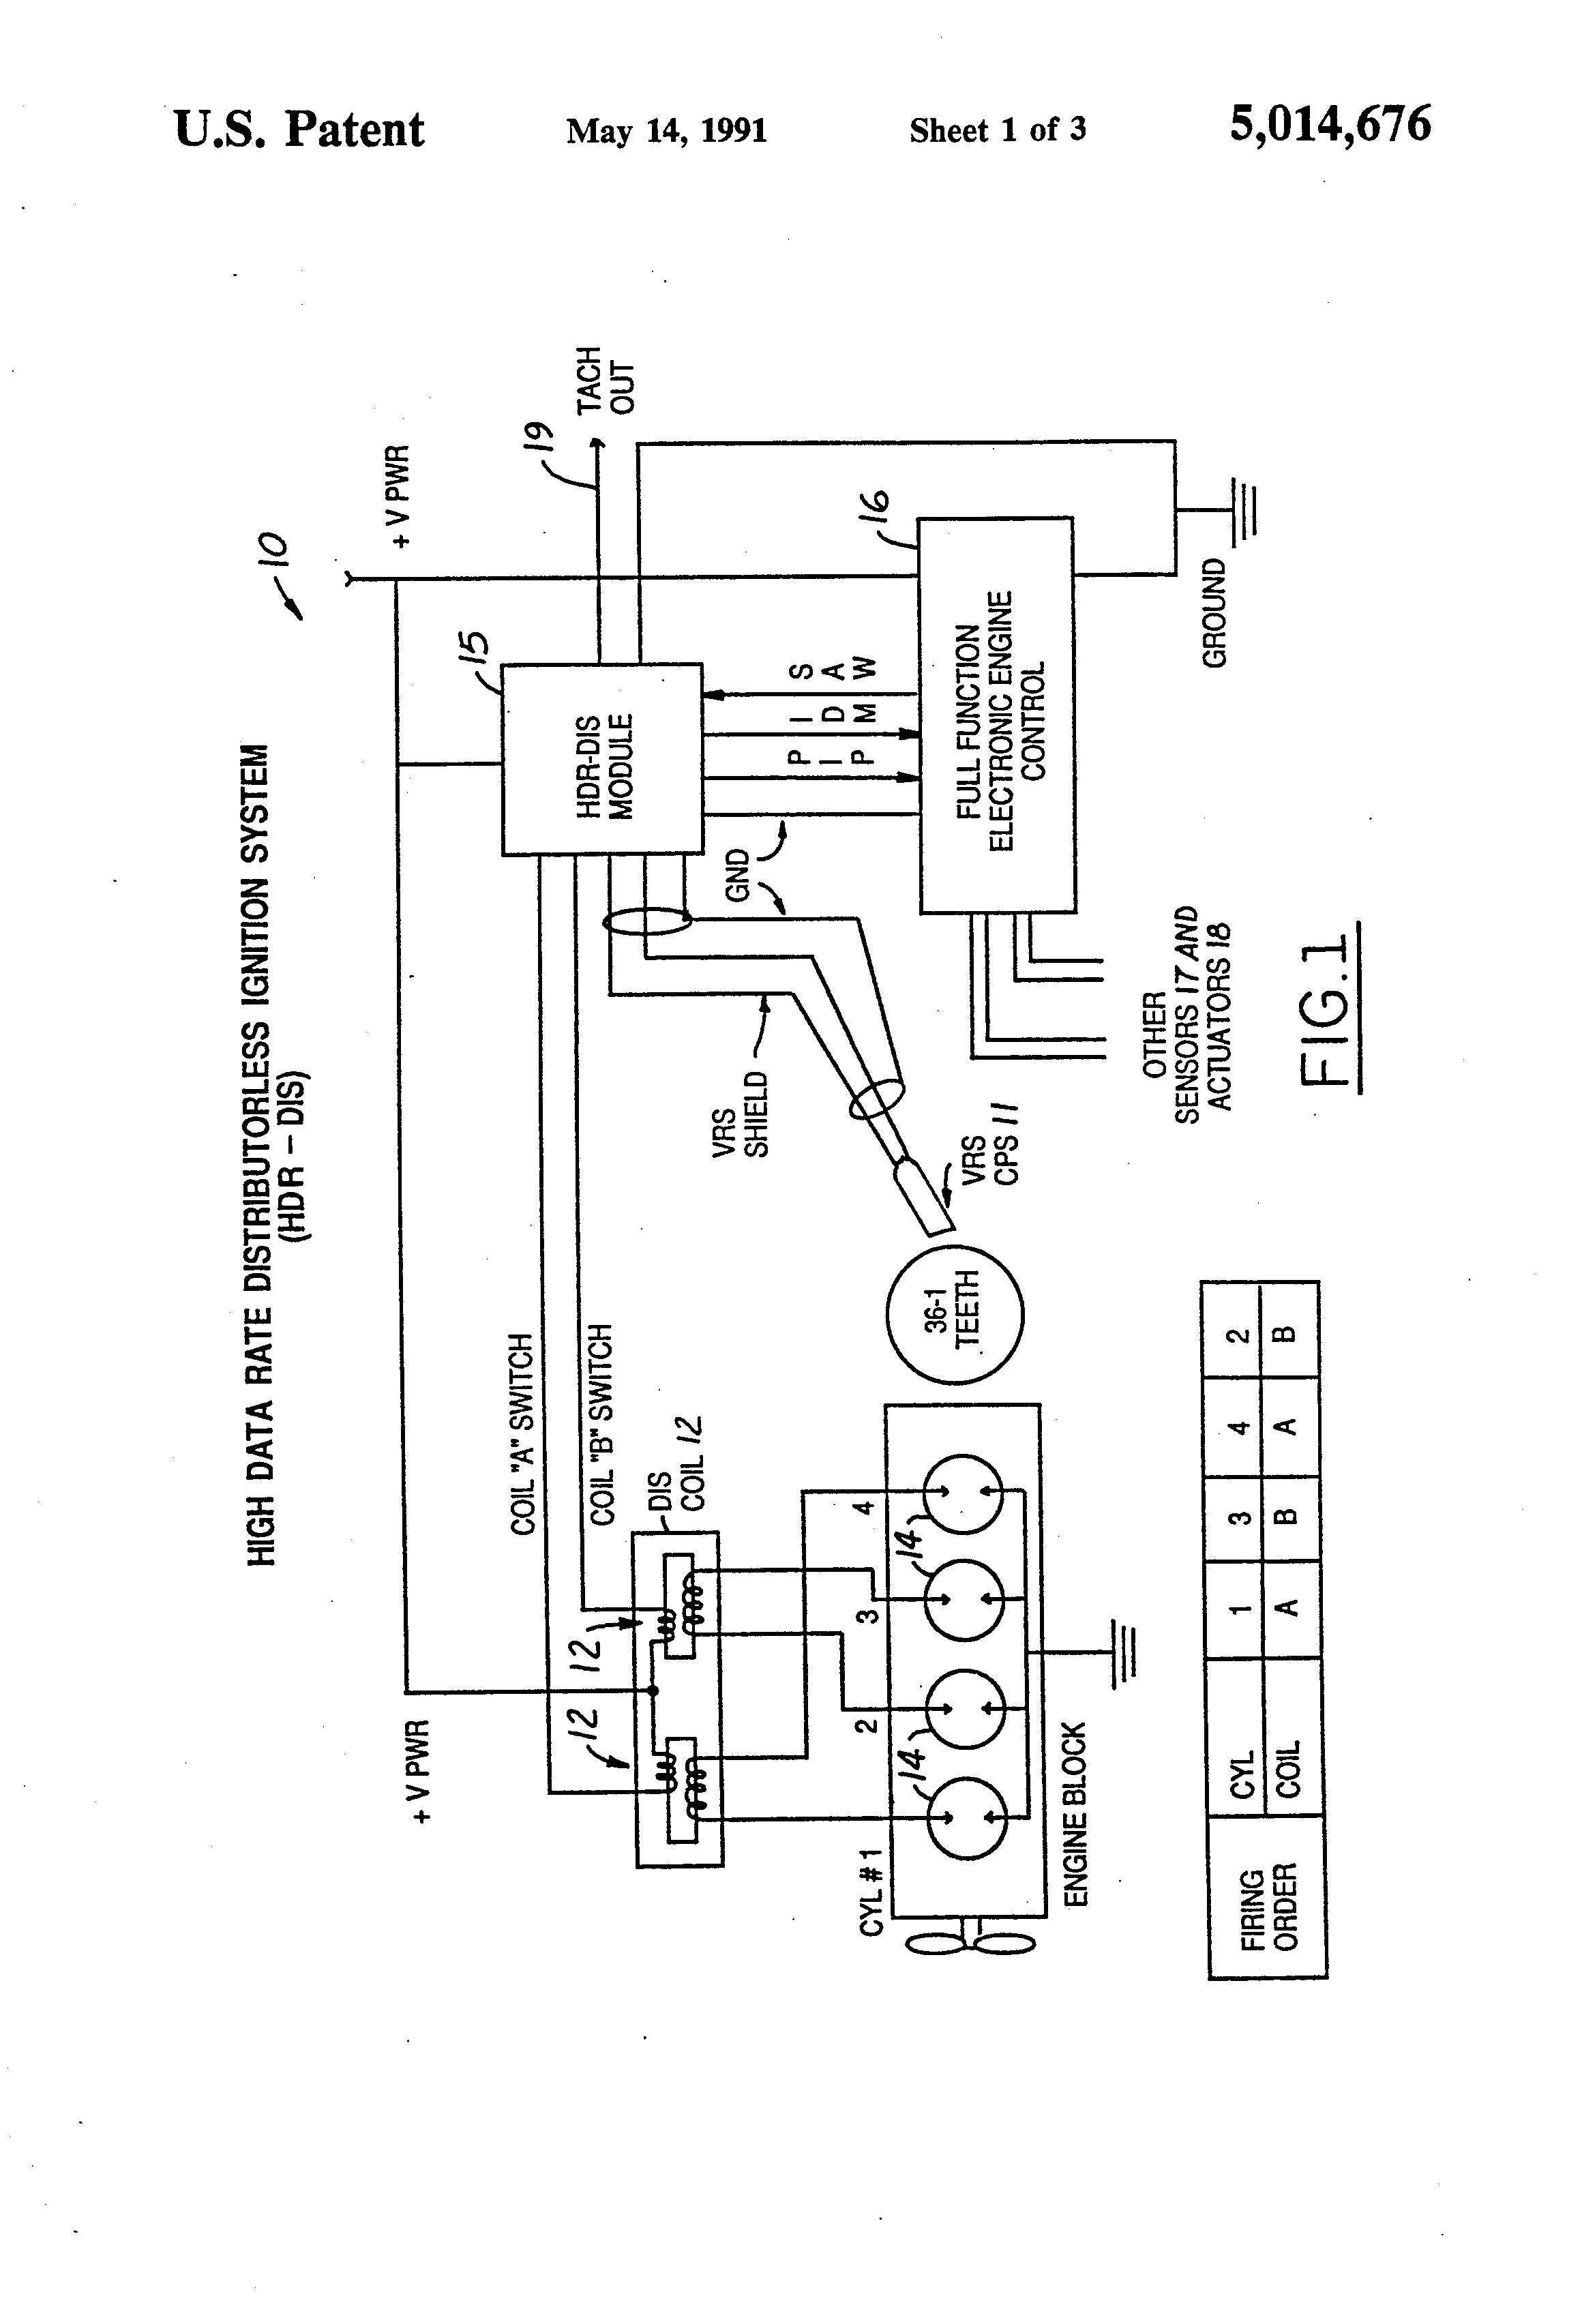 US5014676 1?resize\=665%2C977 wiring diagram dea355 microphone wiring diagrams \u2022 wiring diagram  at bayanpartner.co